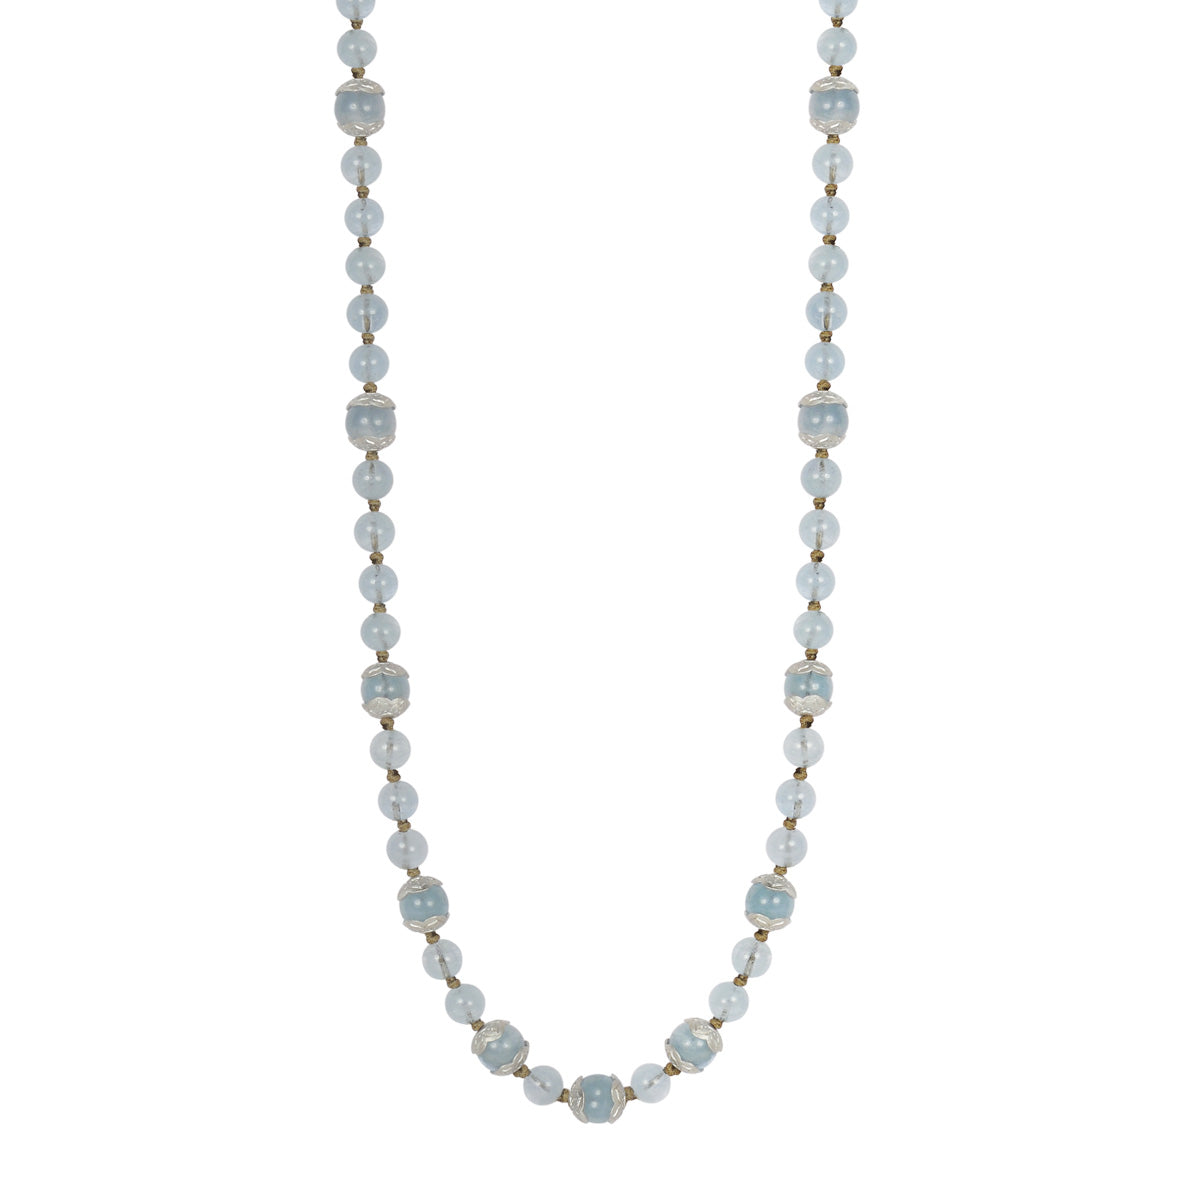 7671763a7 Sterling Silver Flower Cap Aquamarine Bead Necklace on Cord